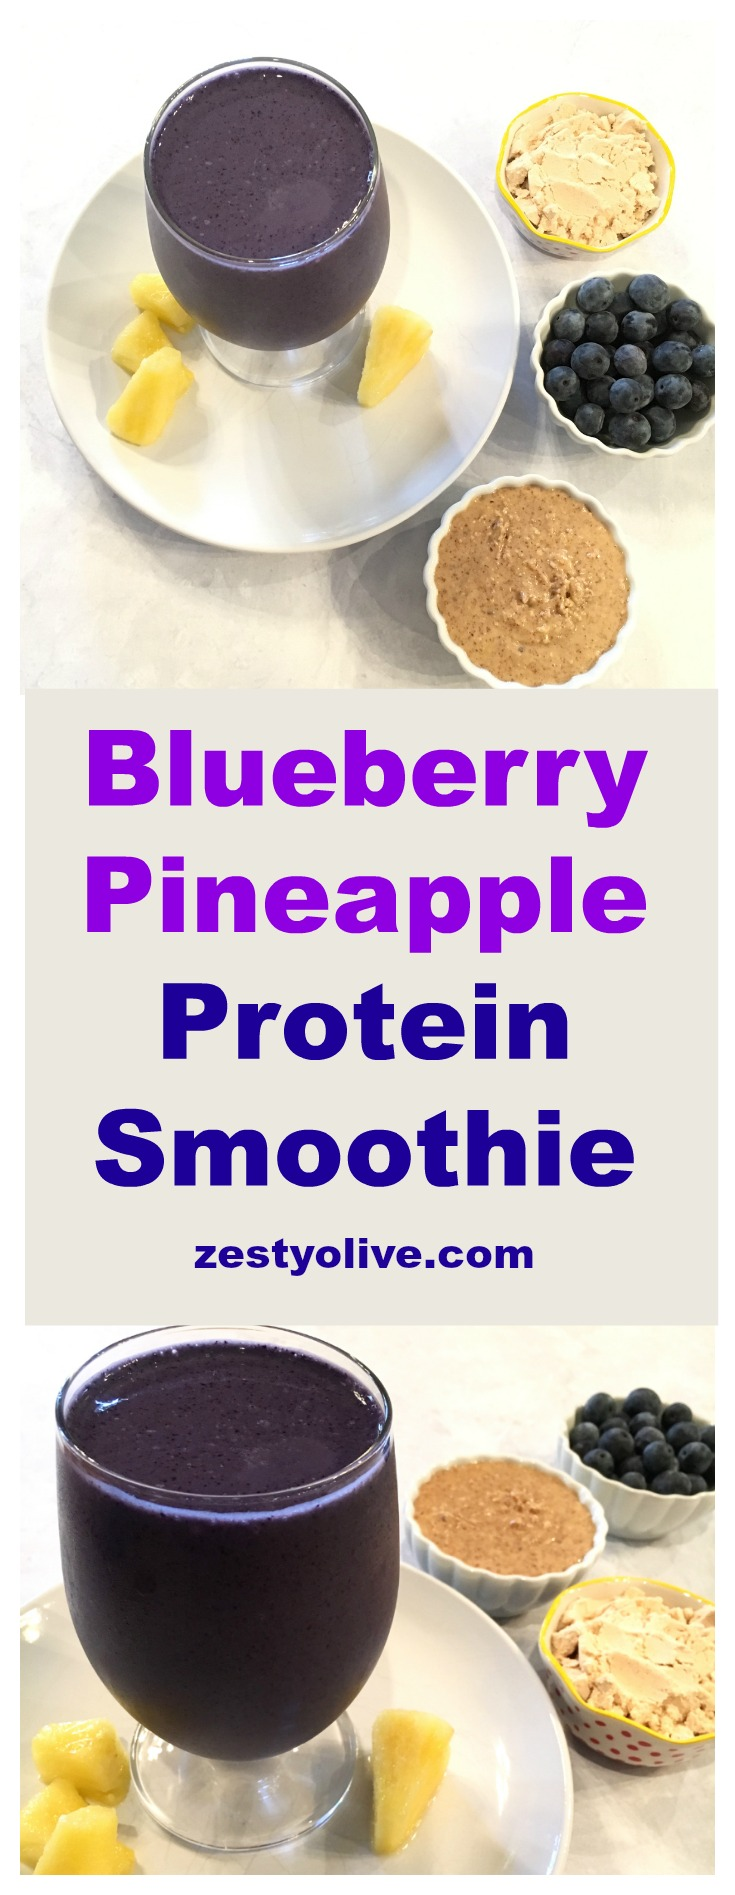 When blueberries are in season, this healthy Blueberry Pineapple Protein Smoothie is a favorite to make.